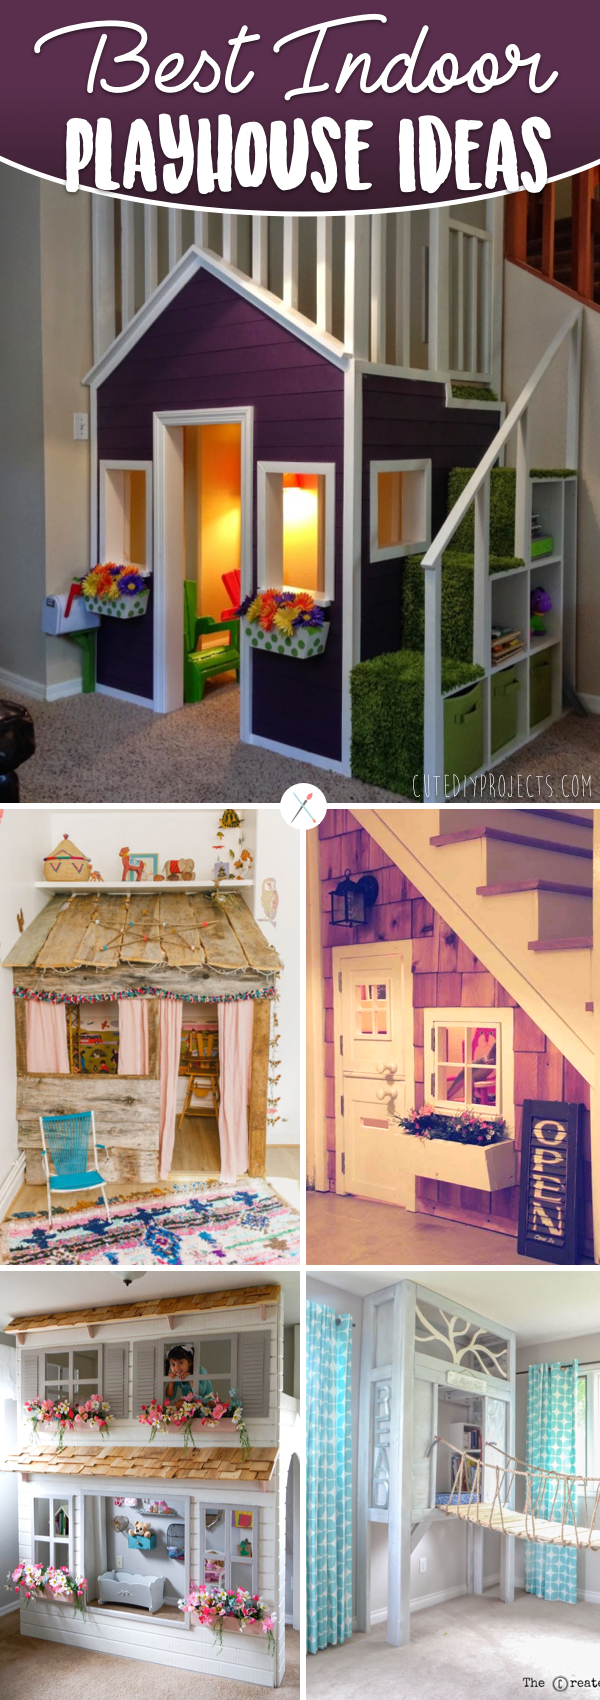 20 Indoor Playhouse Ideas Creating A